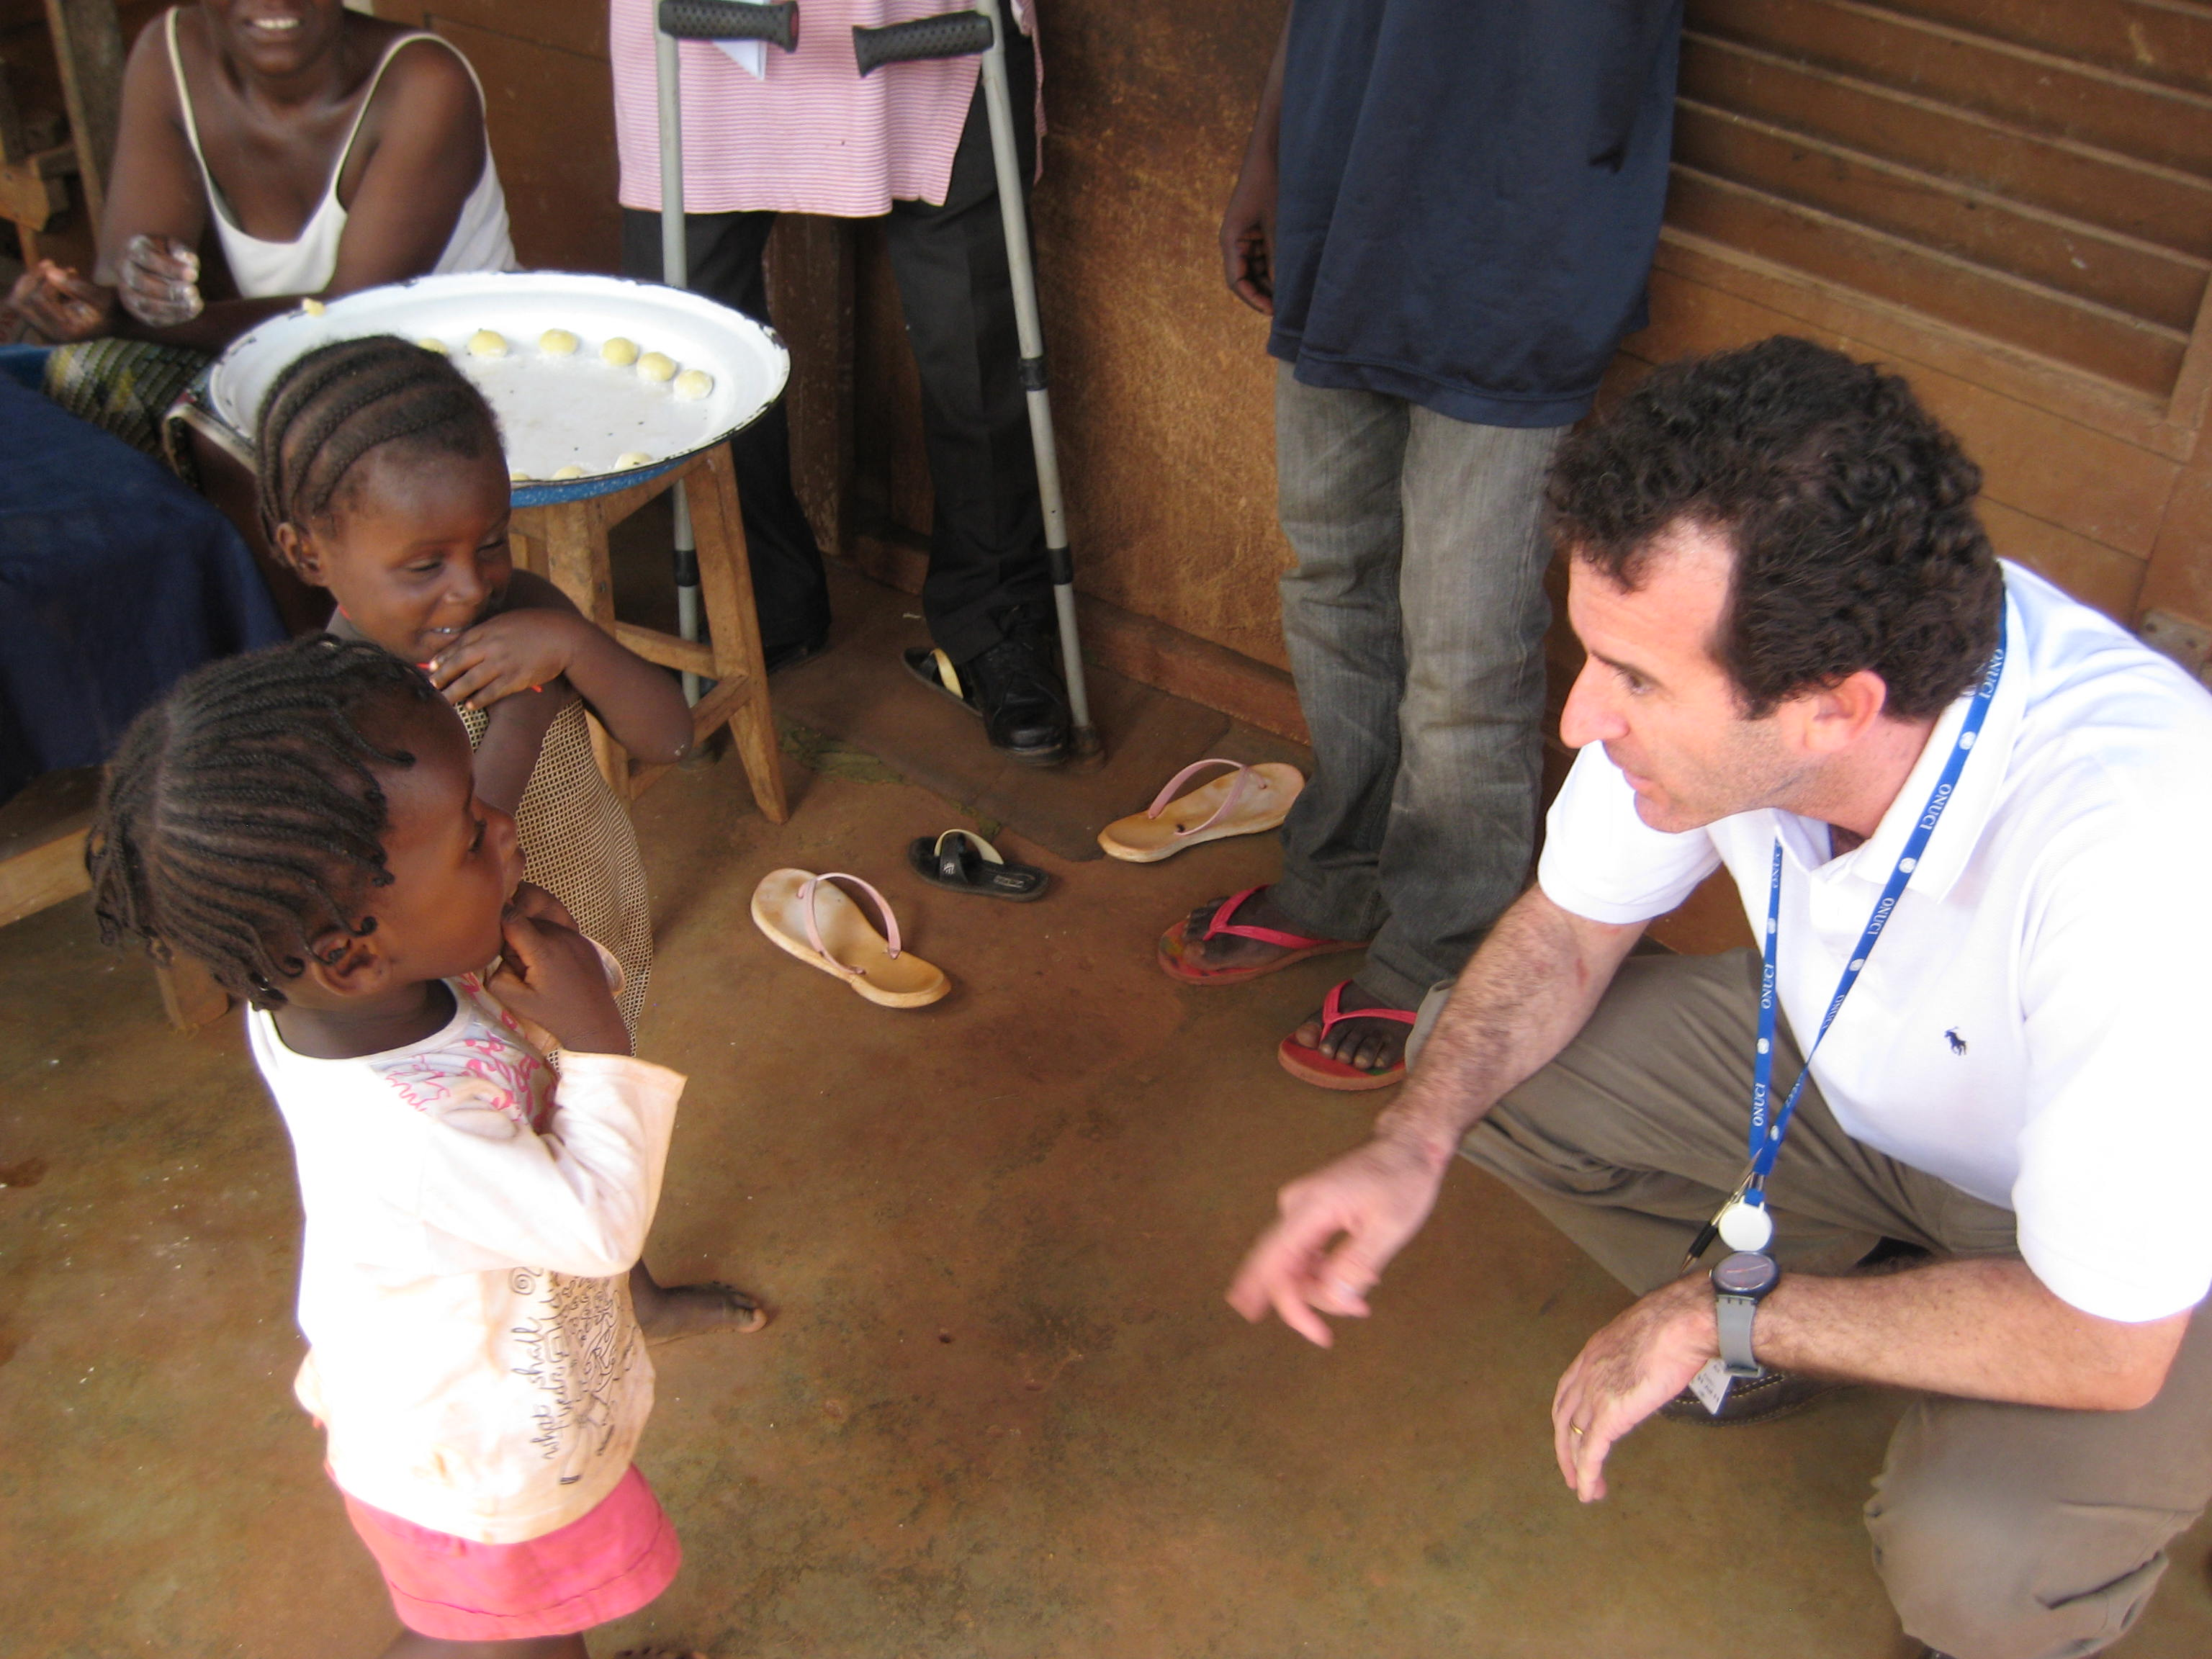 Paul Spiegel meets children displaced by conflict in Ivory Coast in 2011